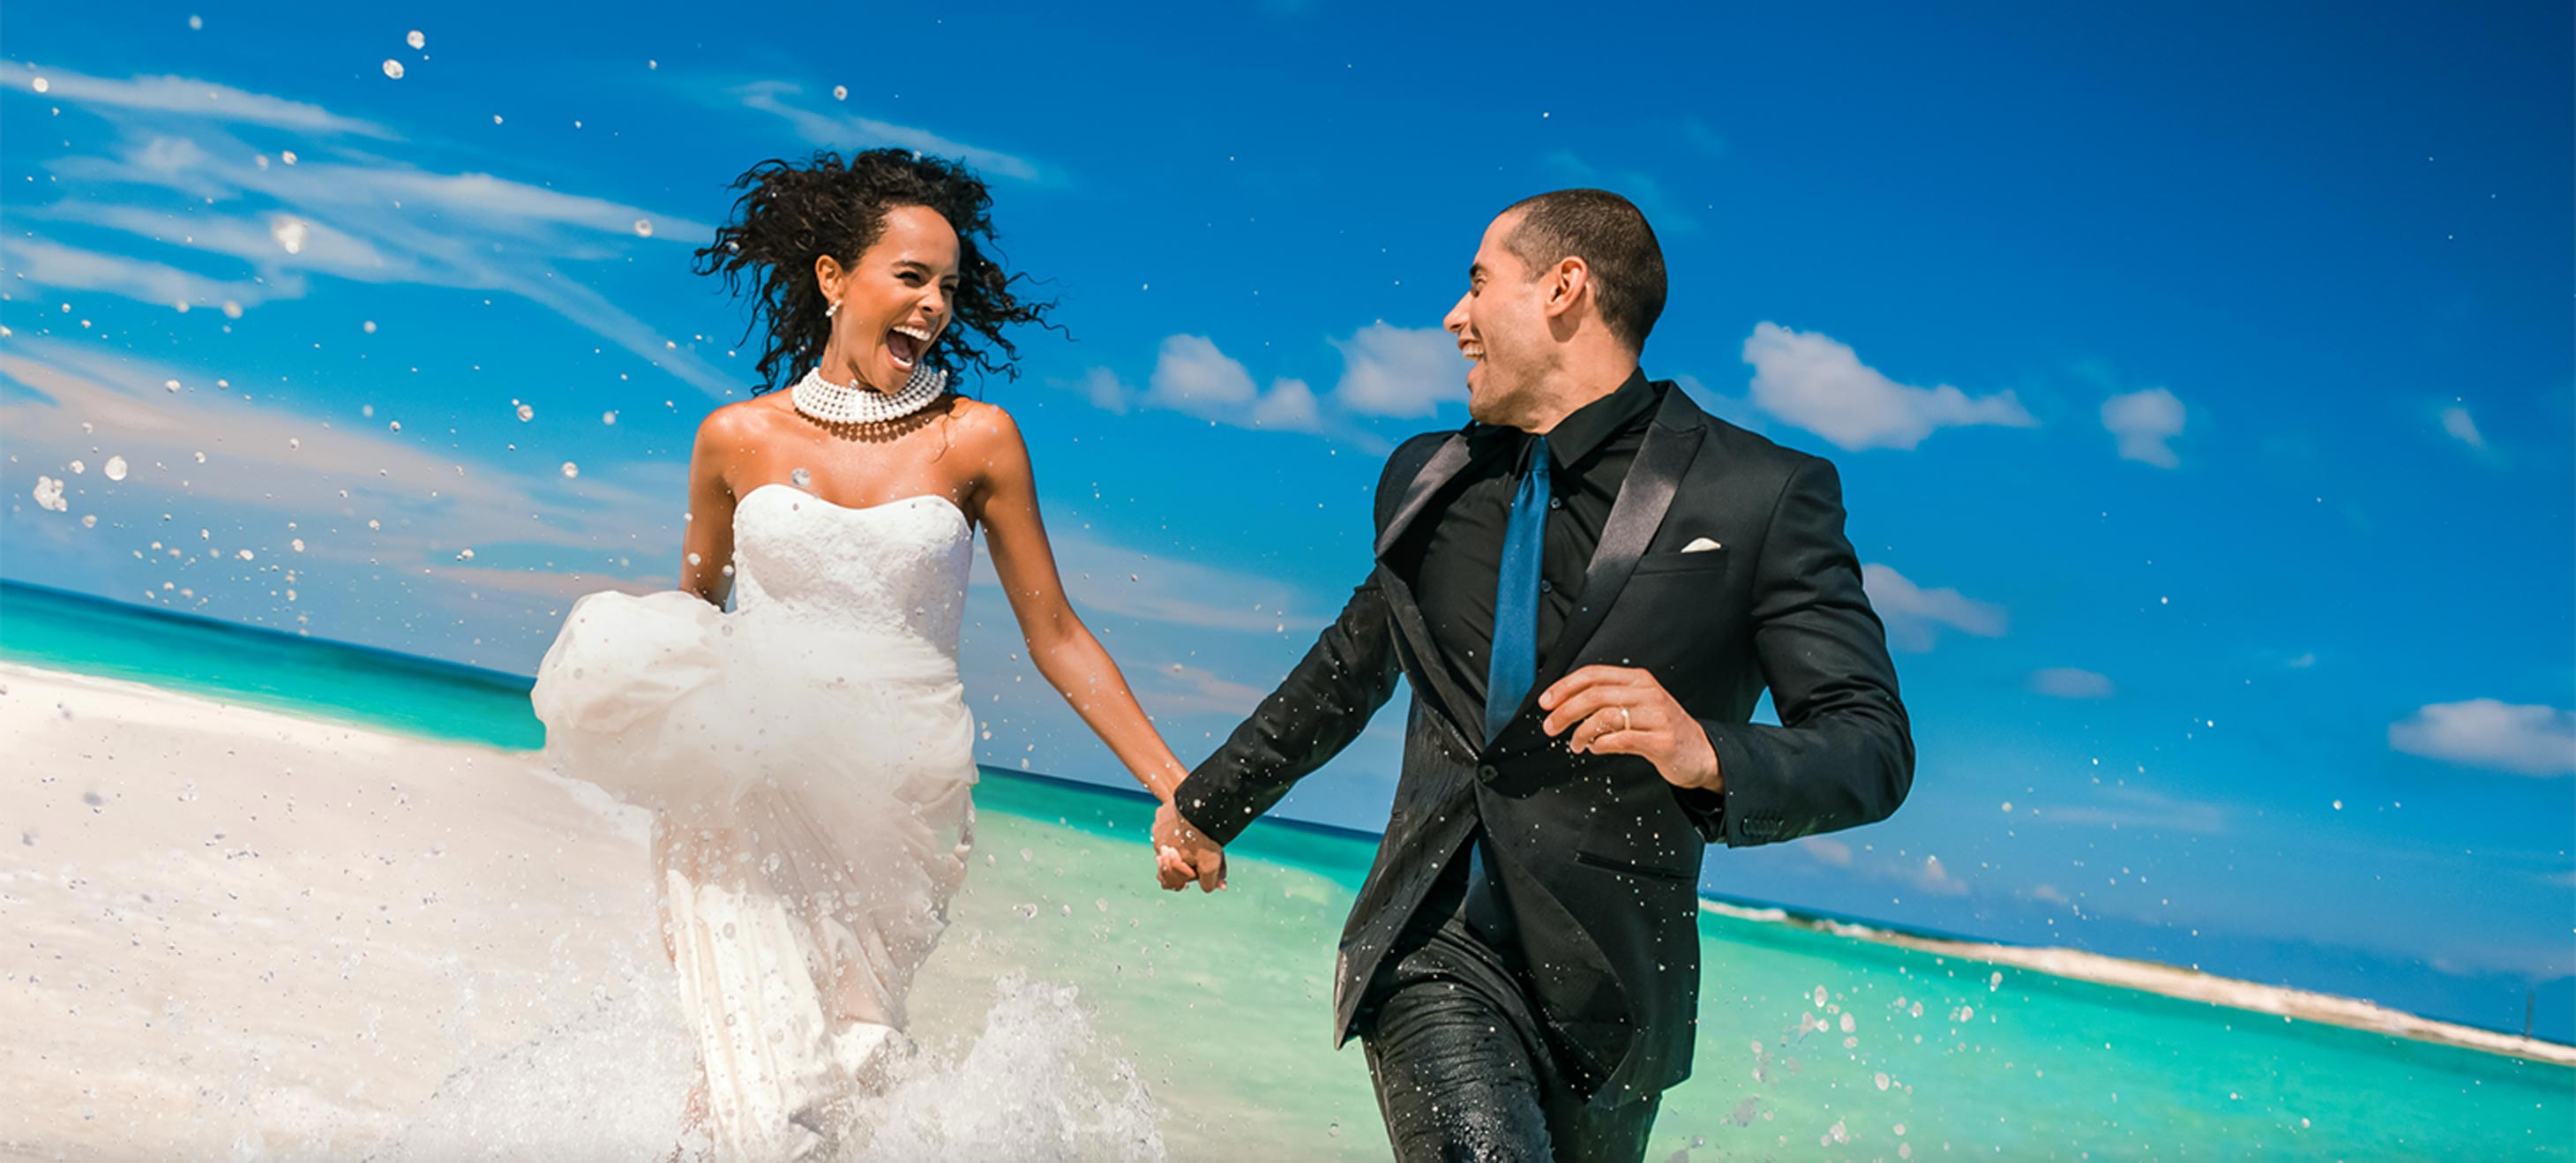 wedding-couple-running-in-the-water